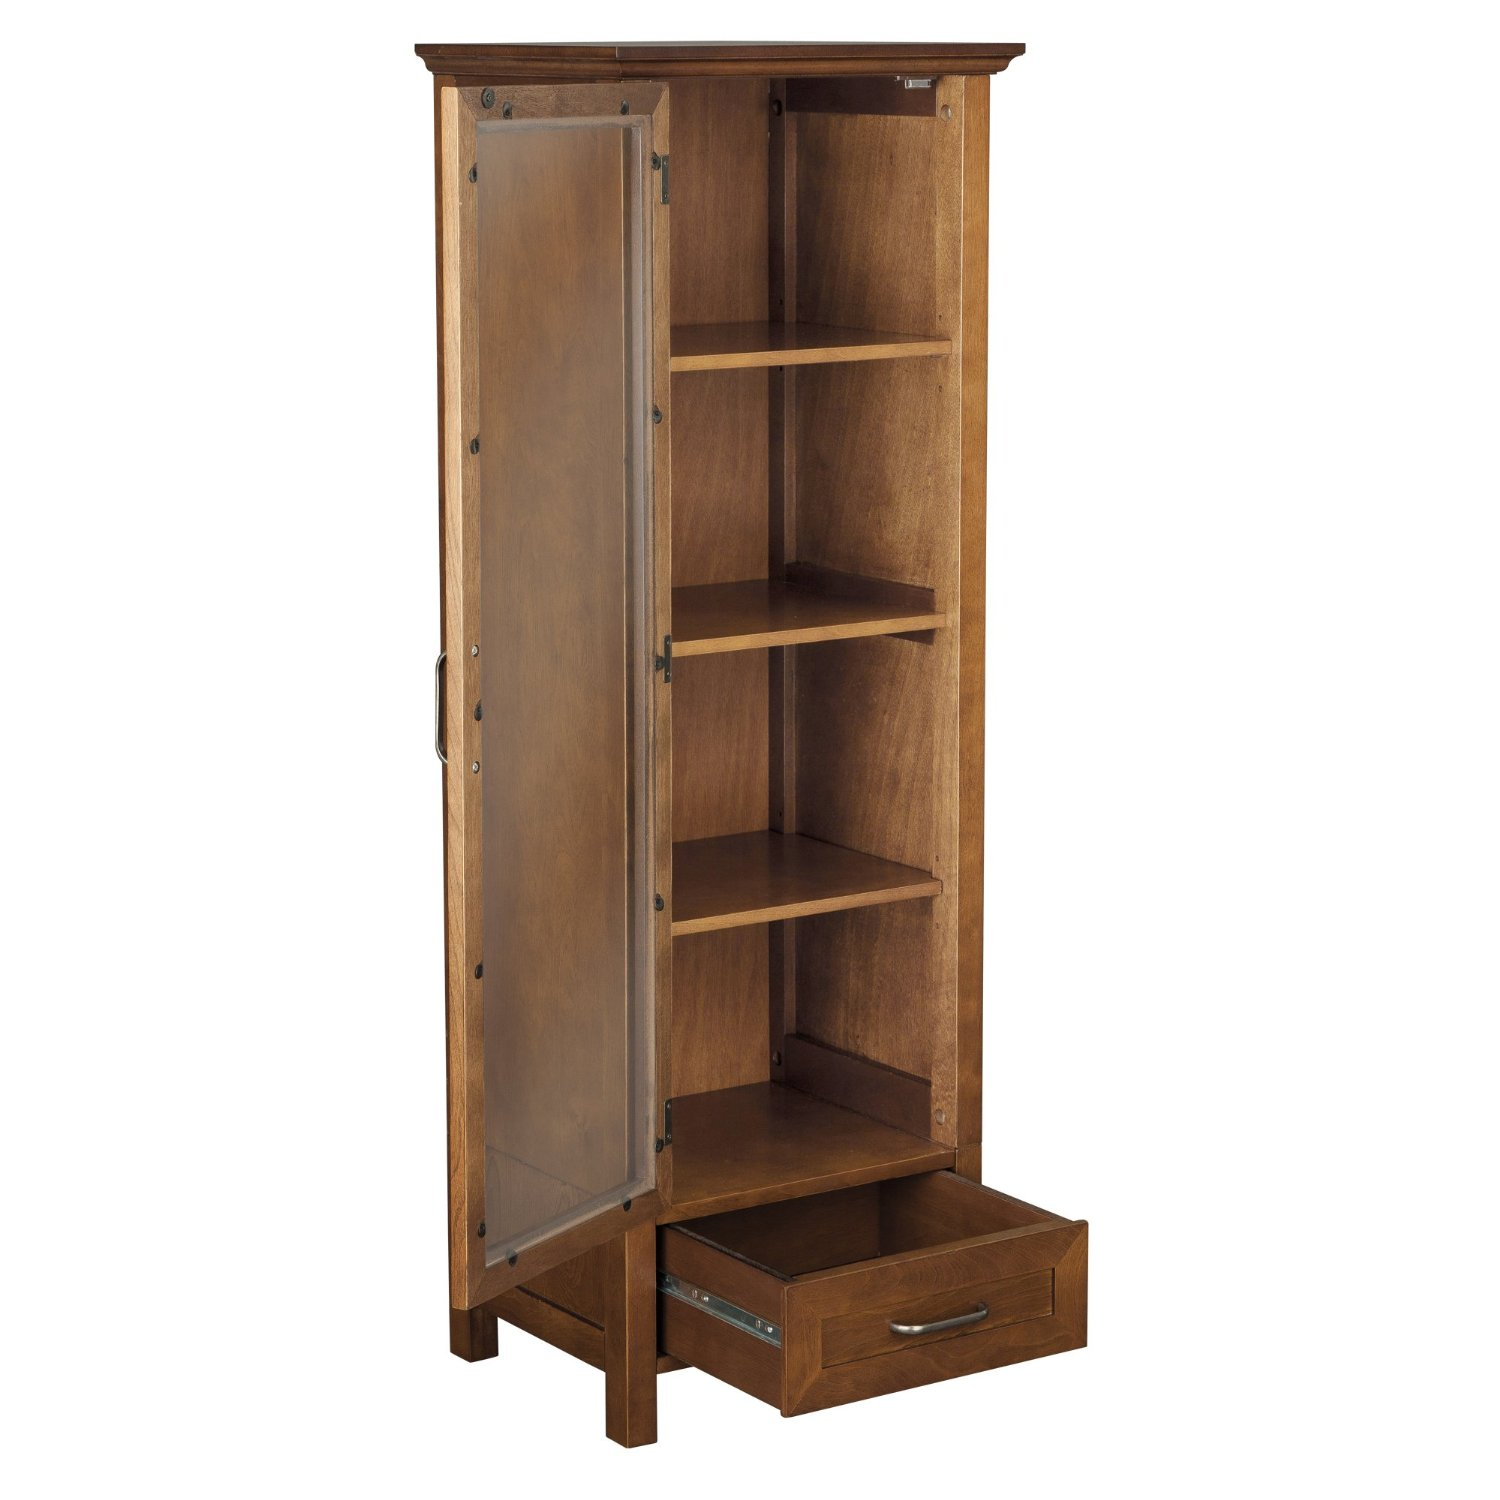 hight resolution of furniture bathroom home design decoration simplistic wooden materials with single door and drawer ideas corner linen cabinet with variations in shape of